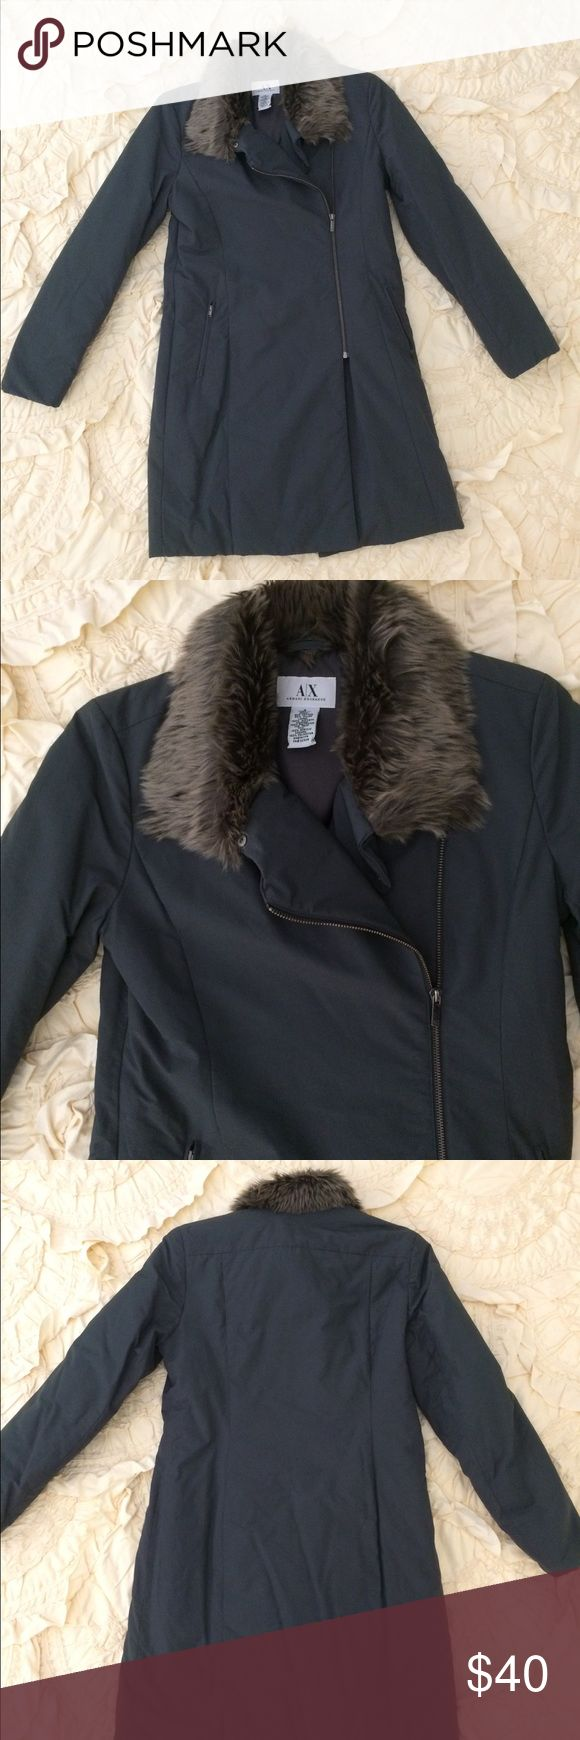 Armani Exchange Coat Armani Exchange coat with faux fur trim.  The coat is light weight but warm.  The collar can be worn multiple ways.  It is in good condition and has only been worn during 2 trips. Armani Exchange Jackets & Coats Puffers